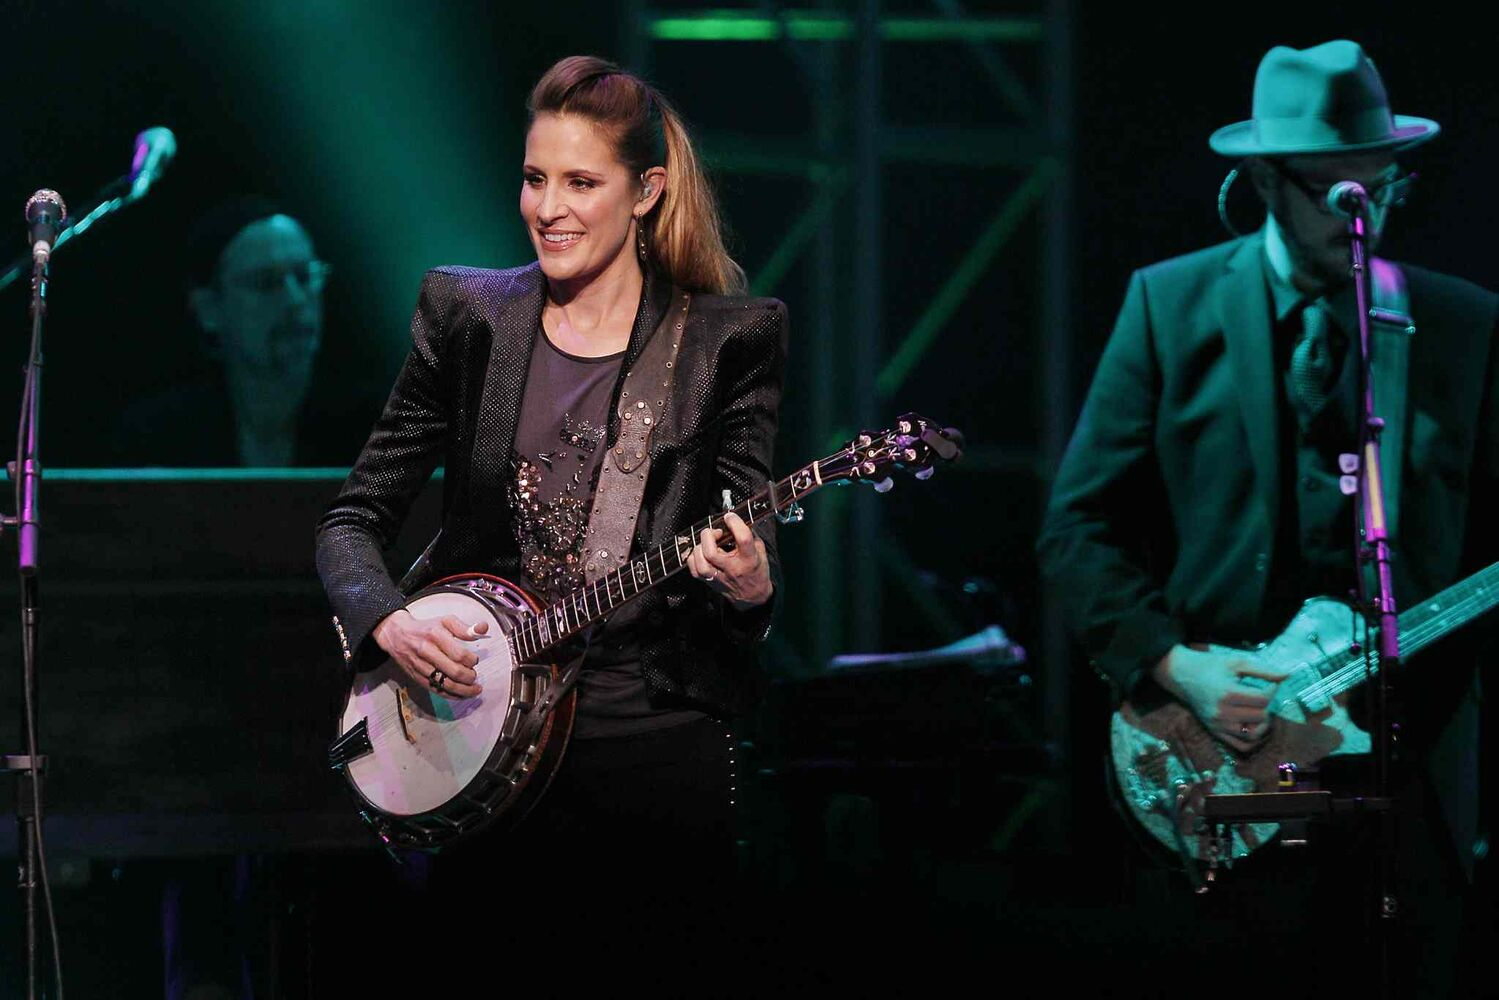 Emily Robison does some banjo pickin' while a bandmate plays guitar during the Dixie Chicks concert at the MTS Centre Tuesday.